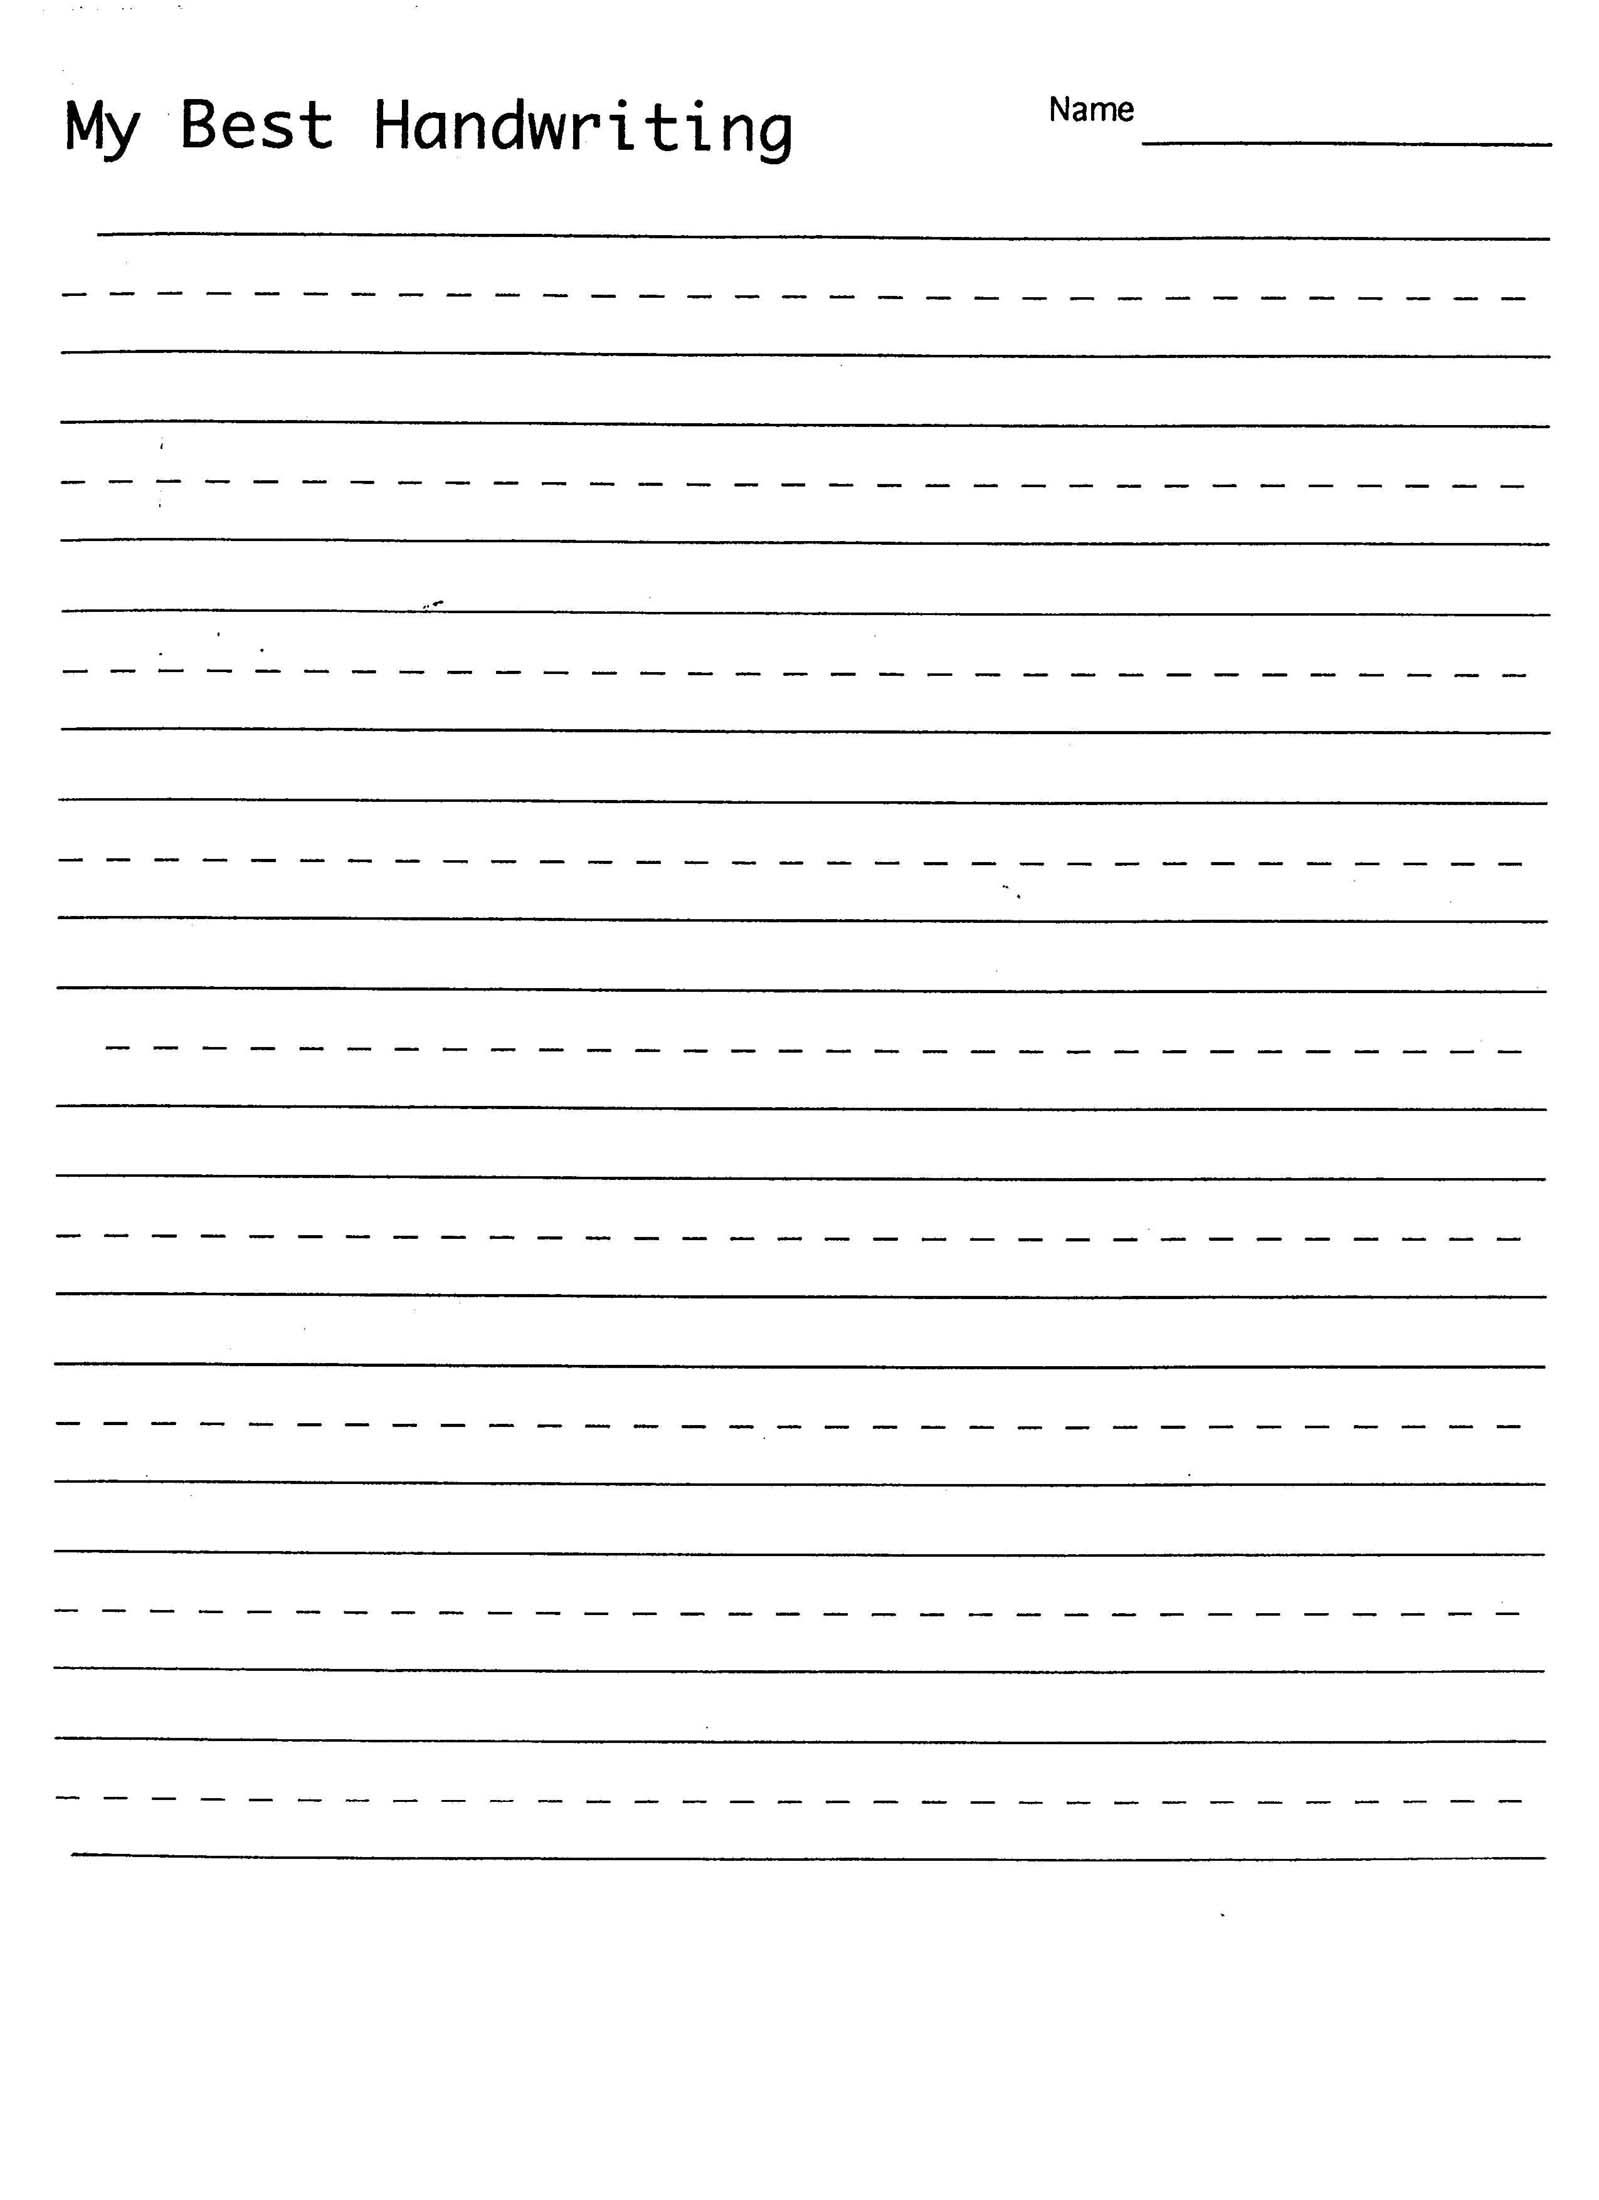 6 Best Images Of Printable Handwriting Practice Sheet